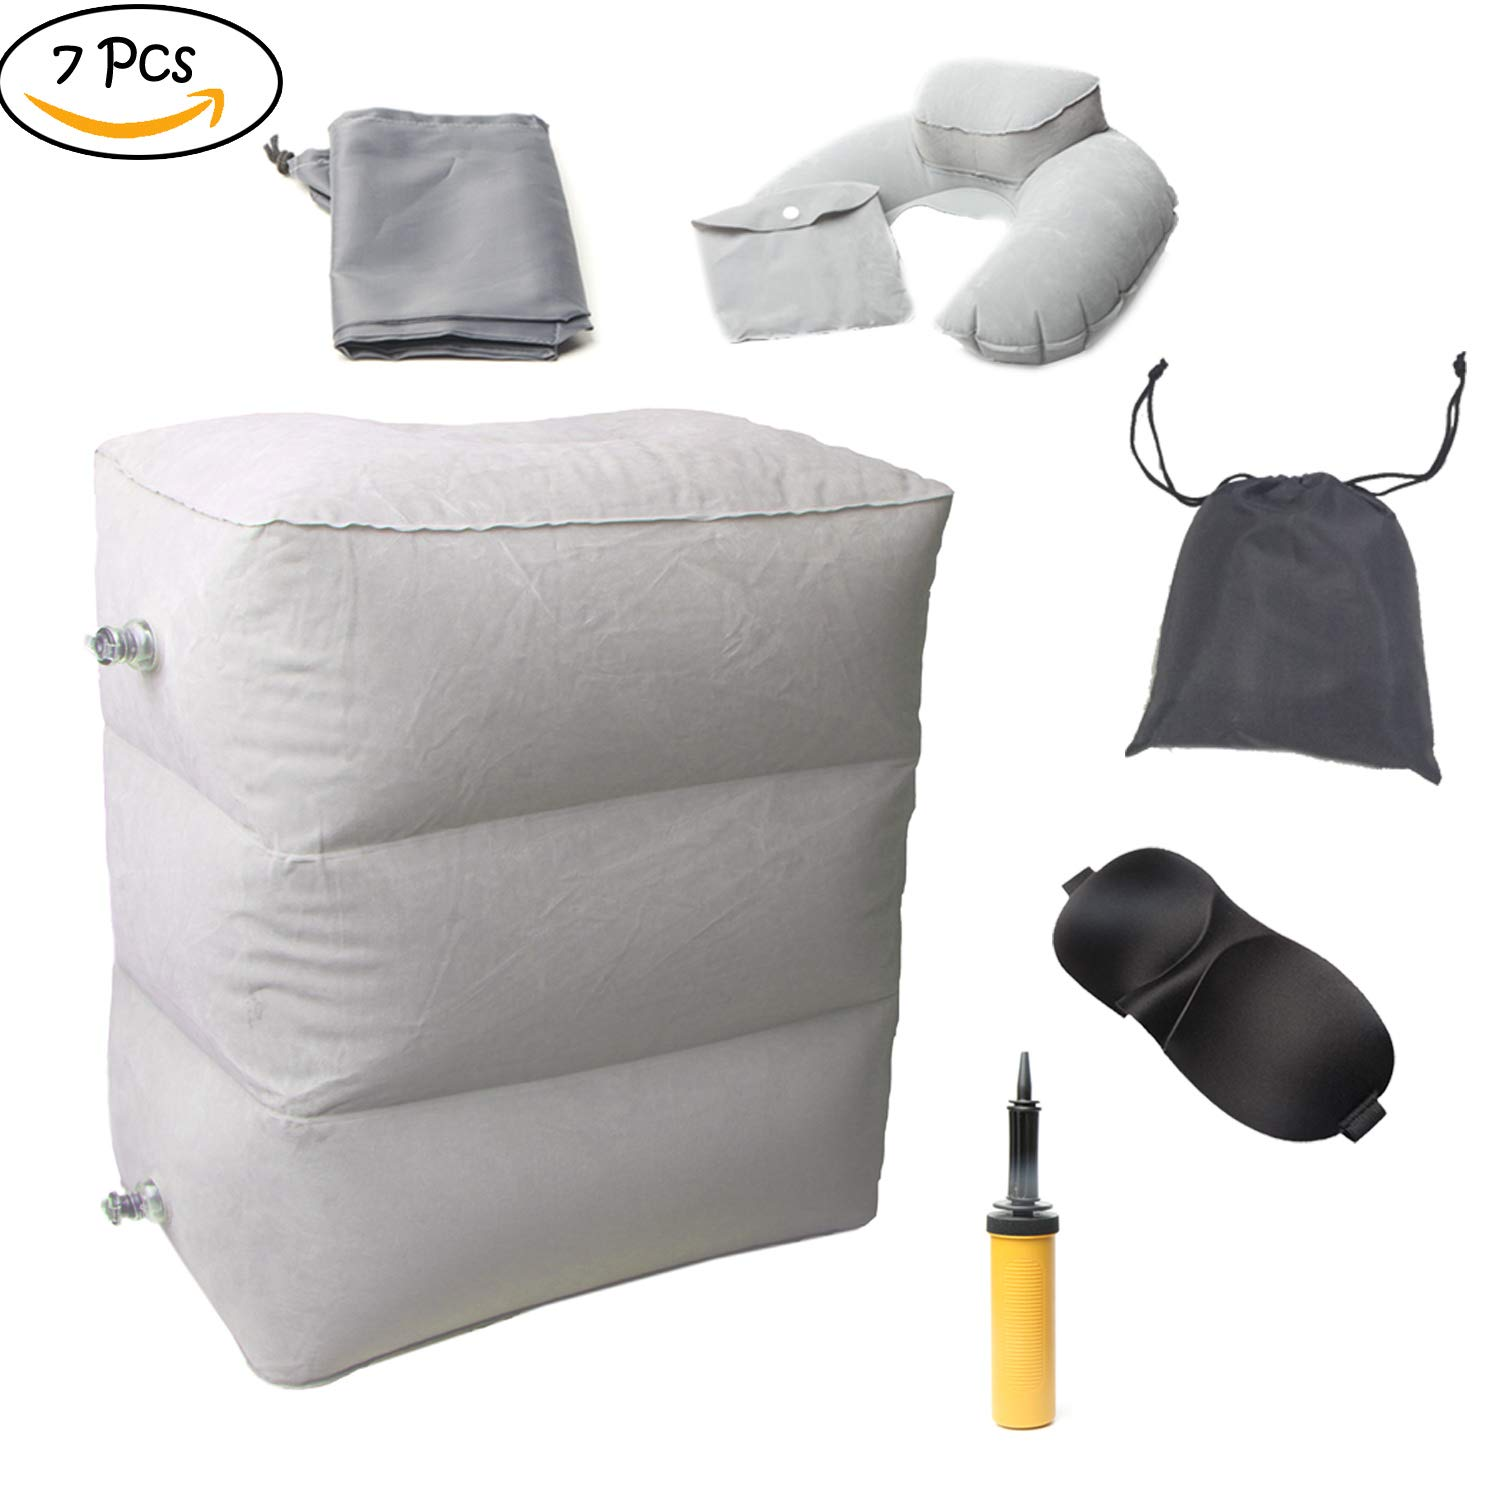 Sxiuyou Inflatable Airplane Footrest Rest Pillow - Adjustable Leg Rest Kids, Adults on AirPlane, Car, Bus, Office, Trains, Home with 3D Sleeping Mask, Drawstring Bag, Bottom Dust Cover, Inflator